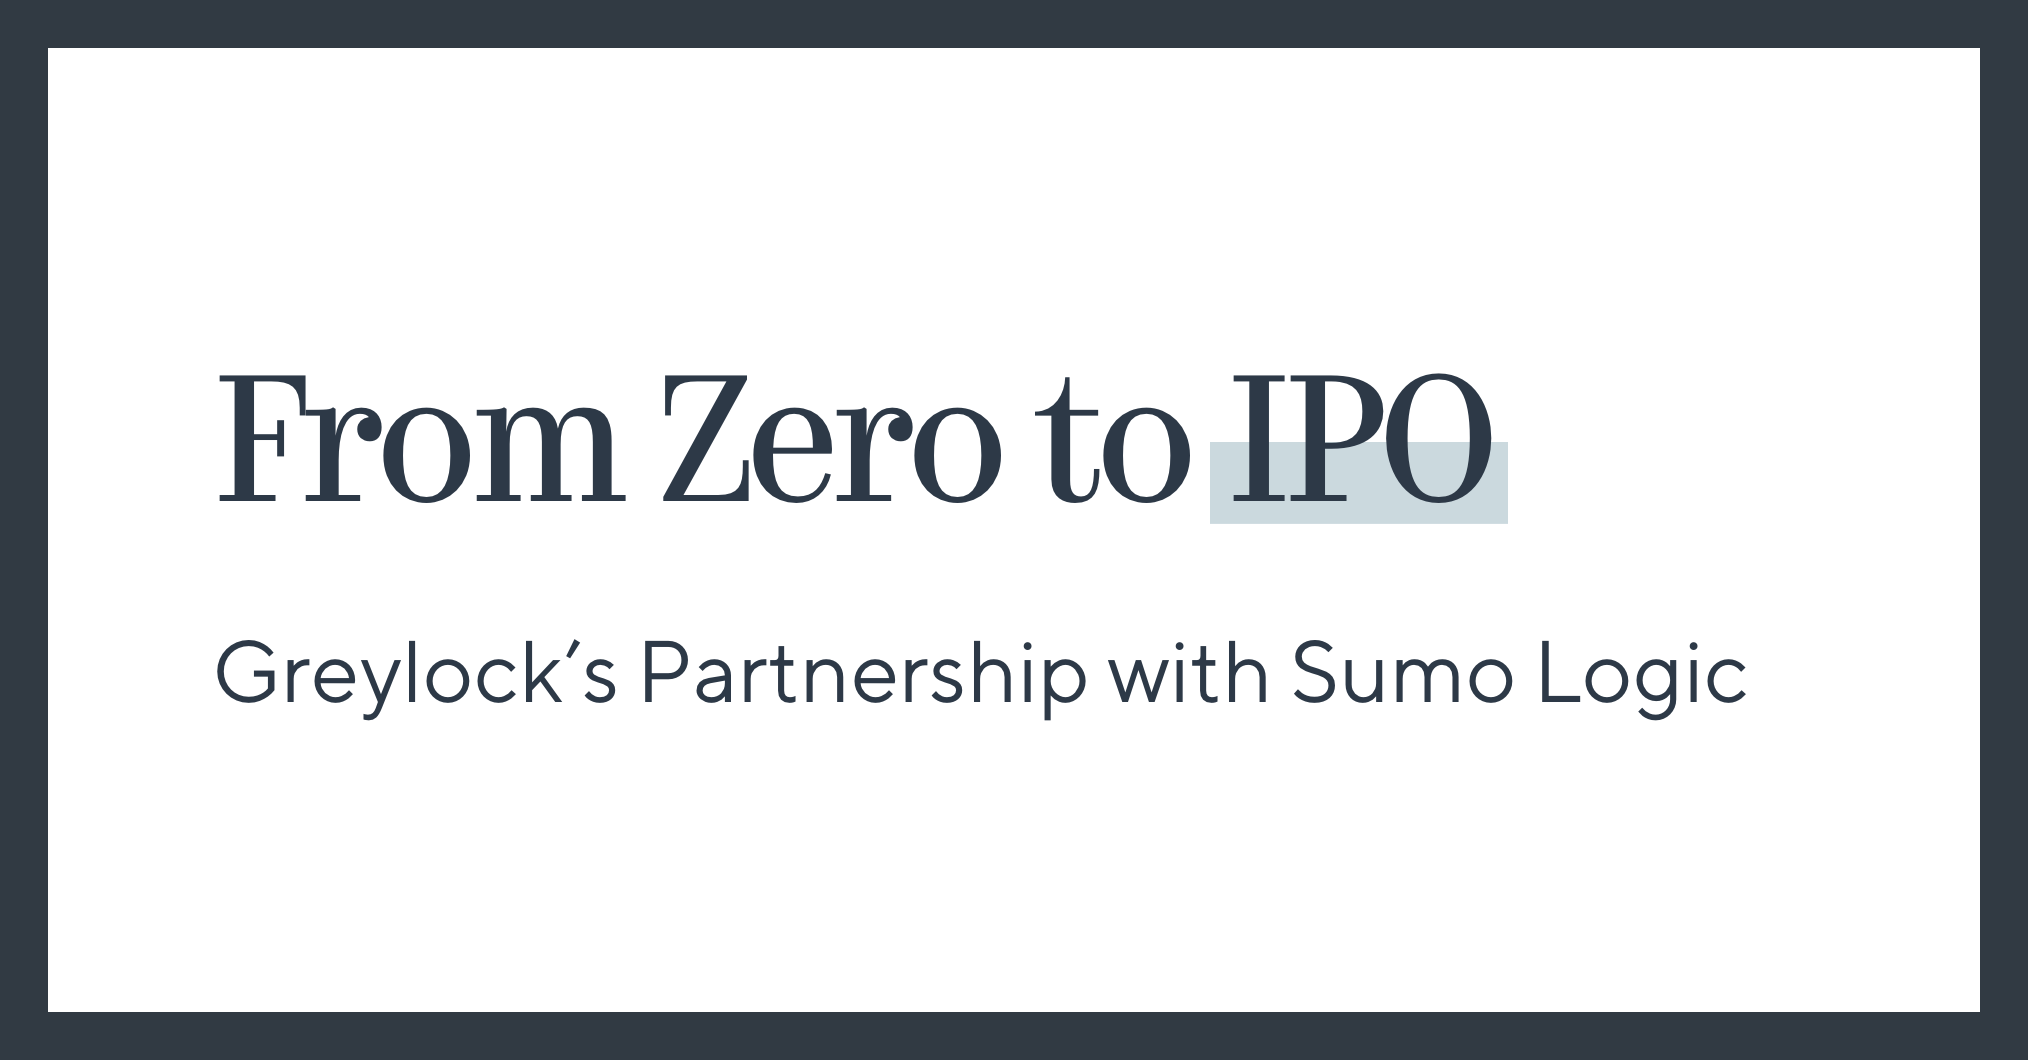 From Zero to IPO